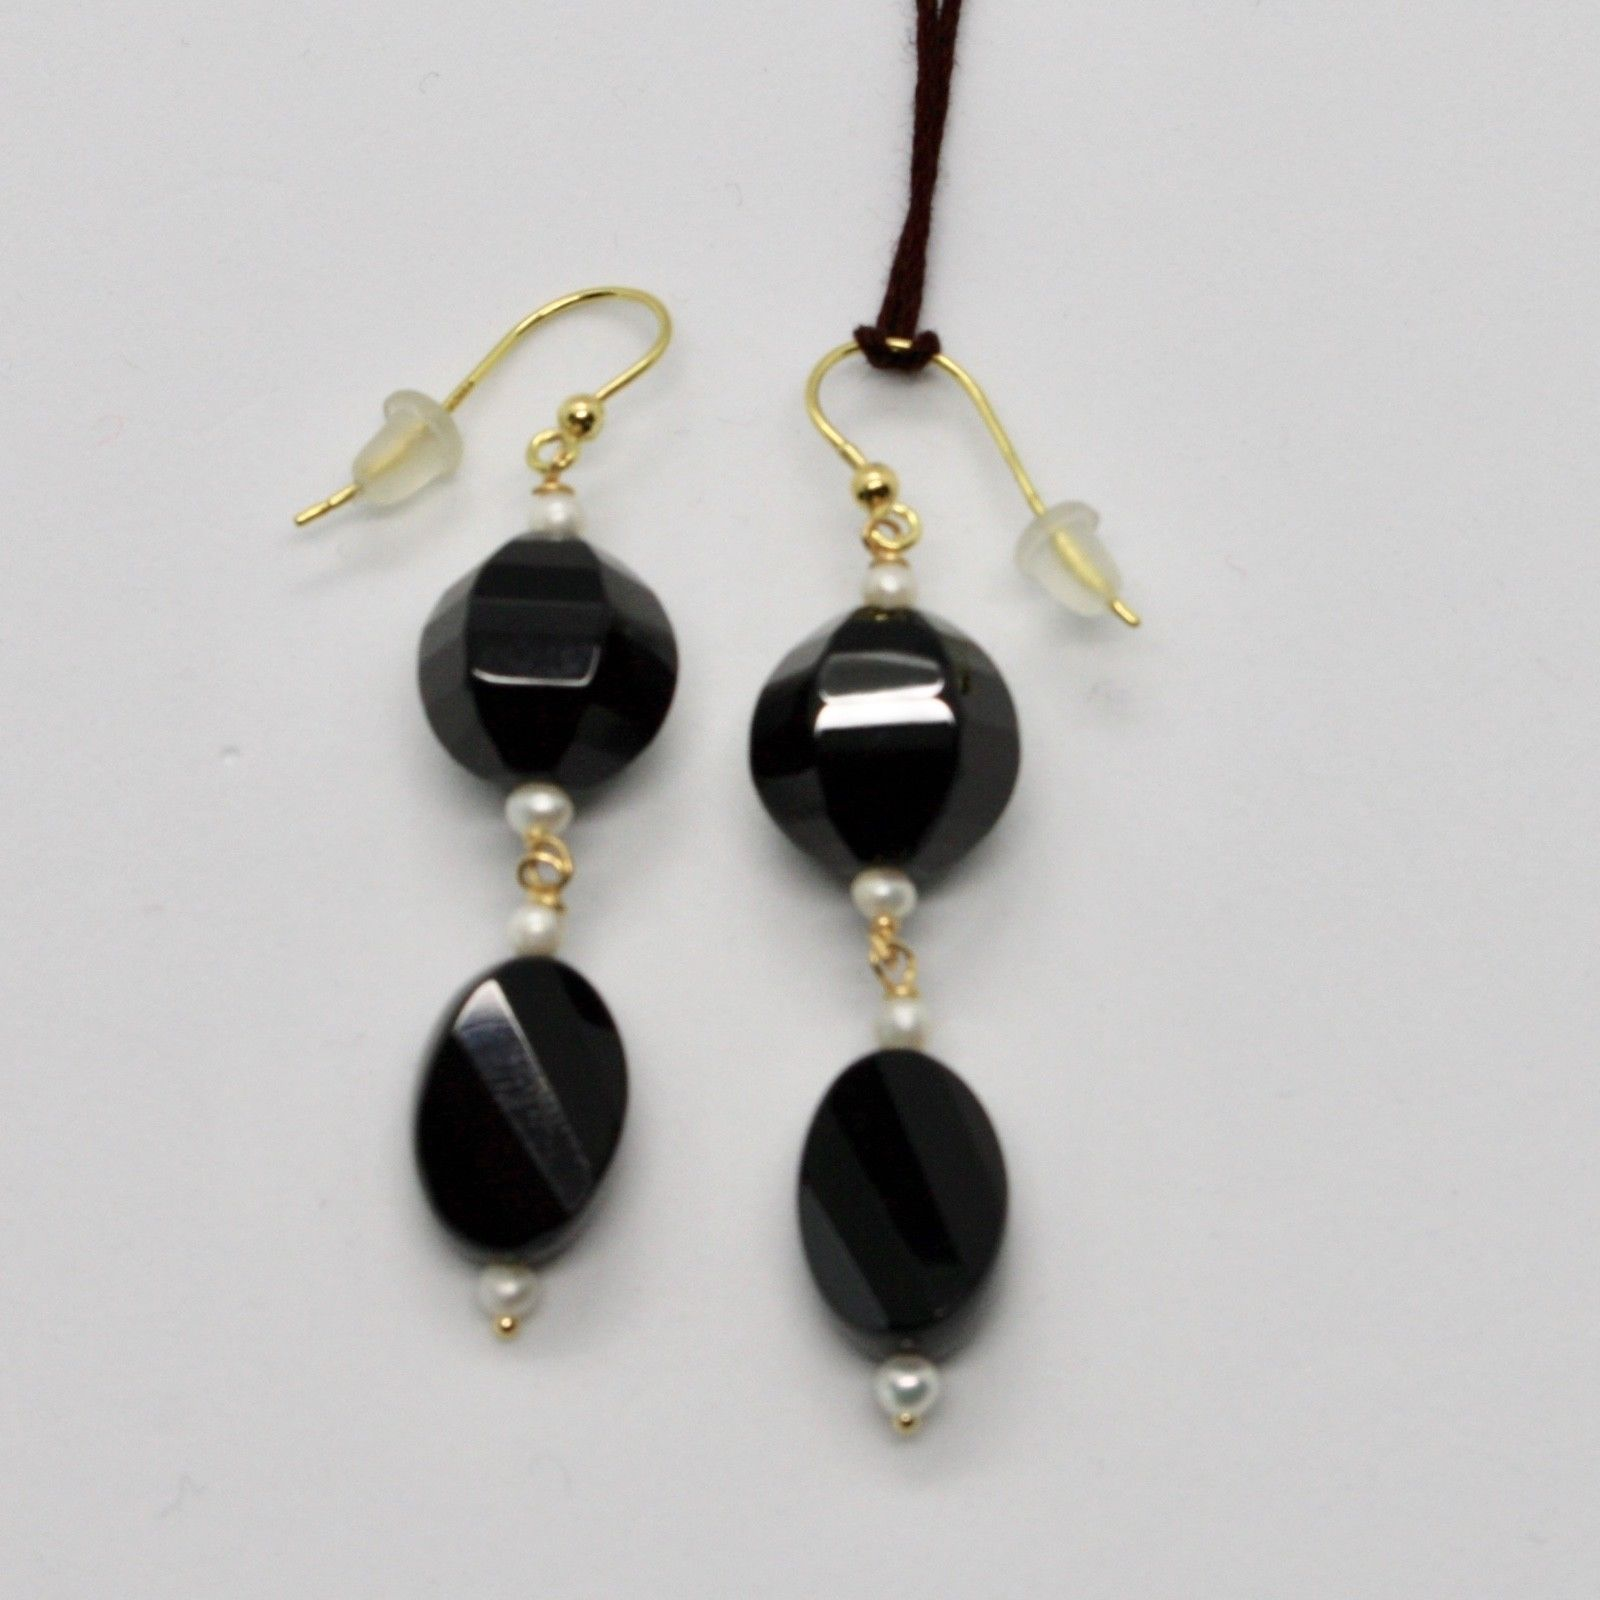 YELLOW GOLD EARRINGS 18KT 750 ONYX BLACK NATURAL MINI PEARLS OF WATER DOLCE